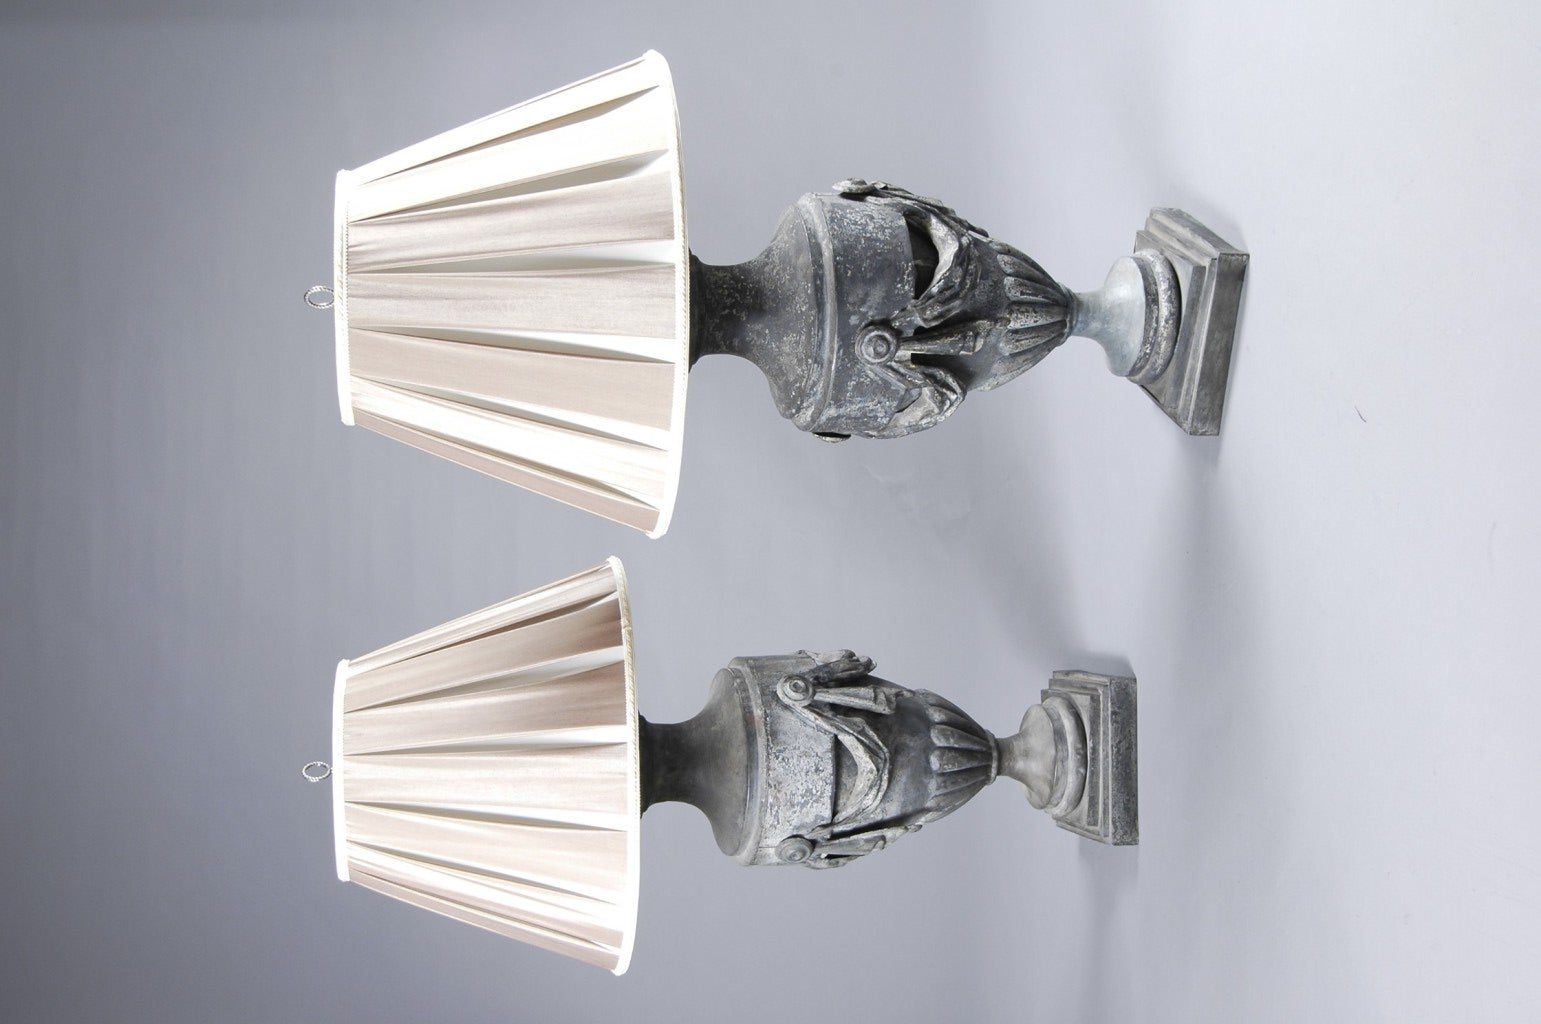 A Pair of Large Scaled Zinc Urn Lamps